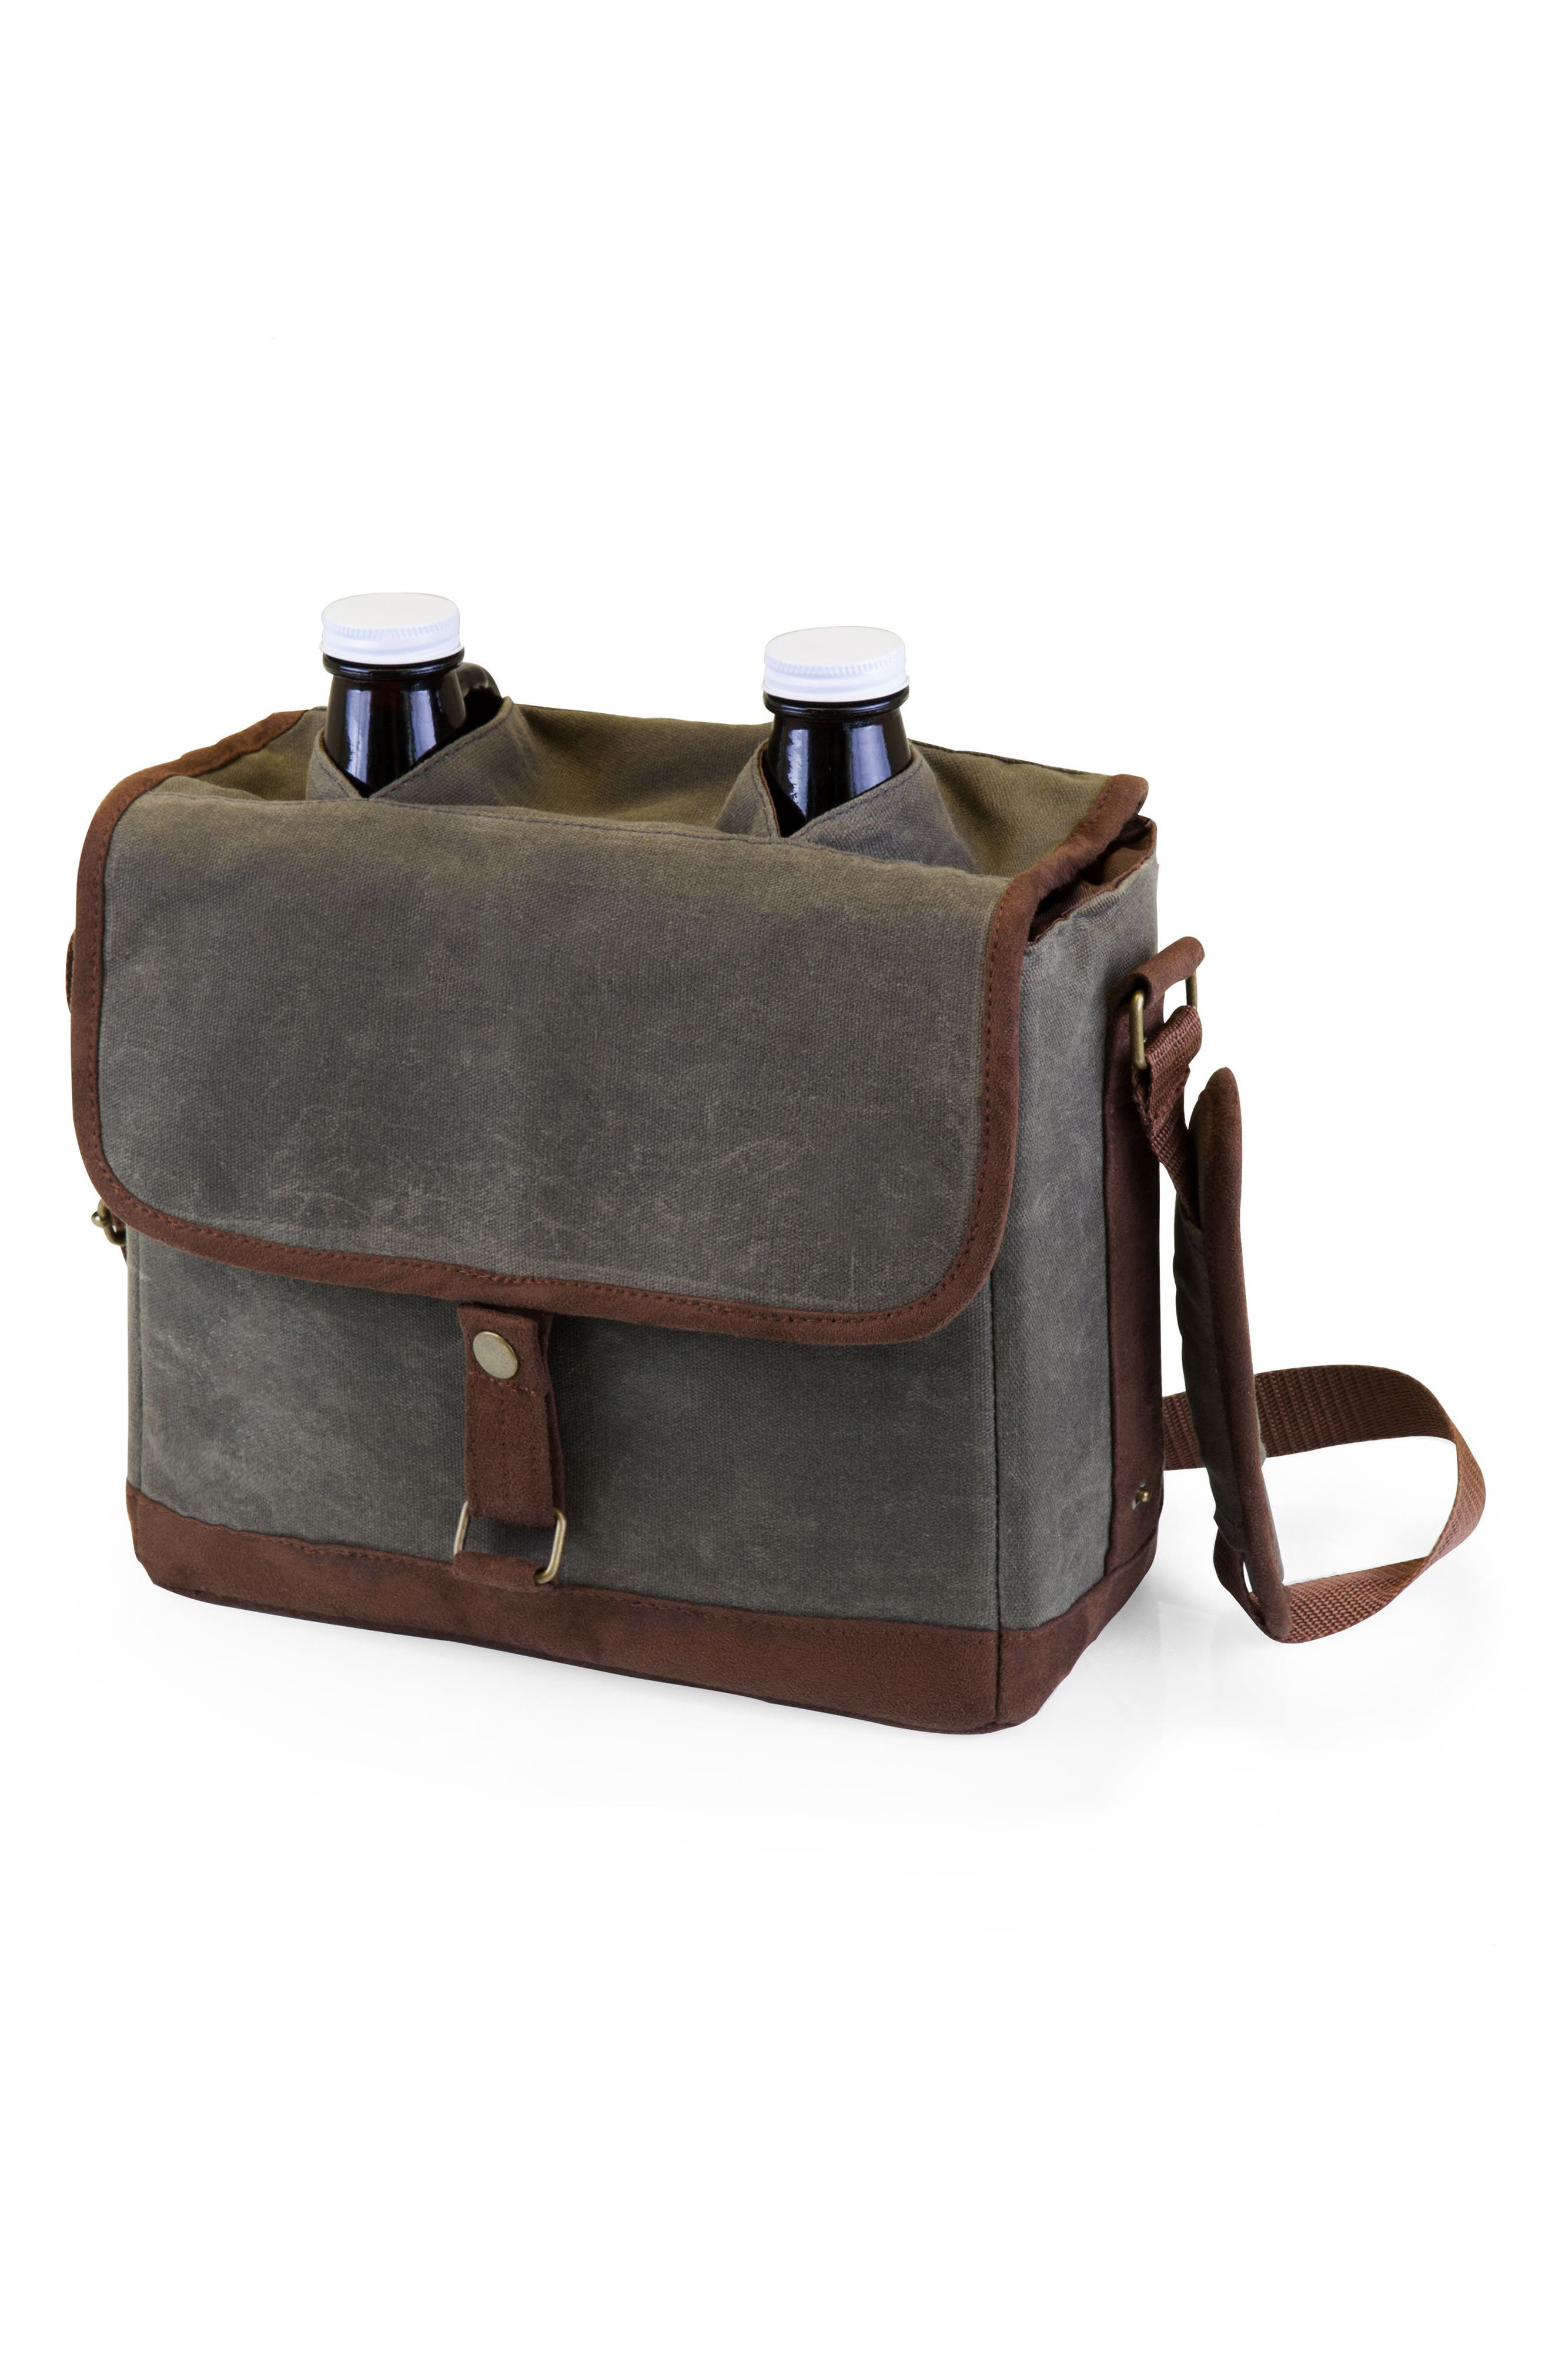 LEGACY,                             Insulated Double Growler Tote & Growlers,                             Main thumbnail 1, color,                             301